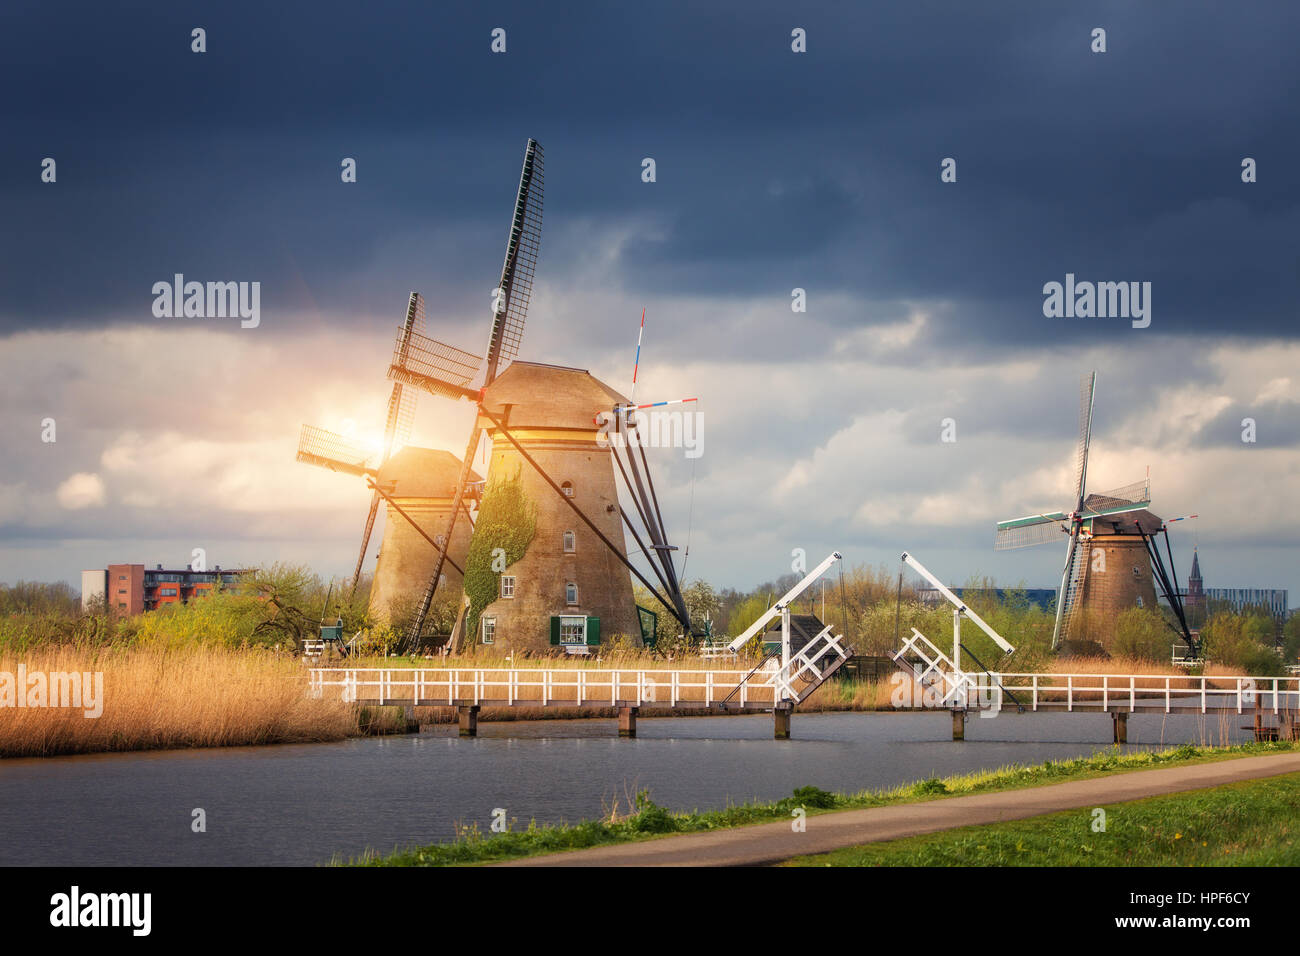 Windmills against cloudy sky at sunset in famous Kinderdijk, Netherlands. Rustic landscape with traditional dutch - Stock Image